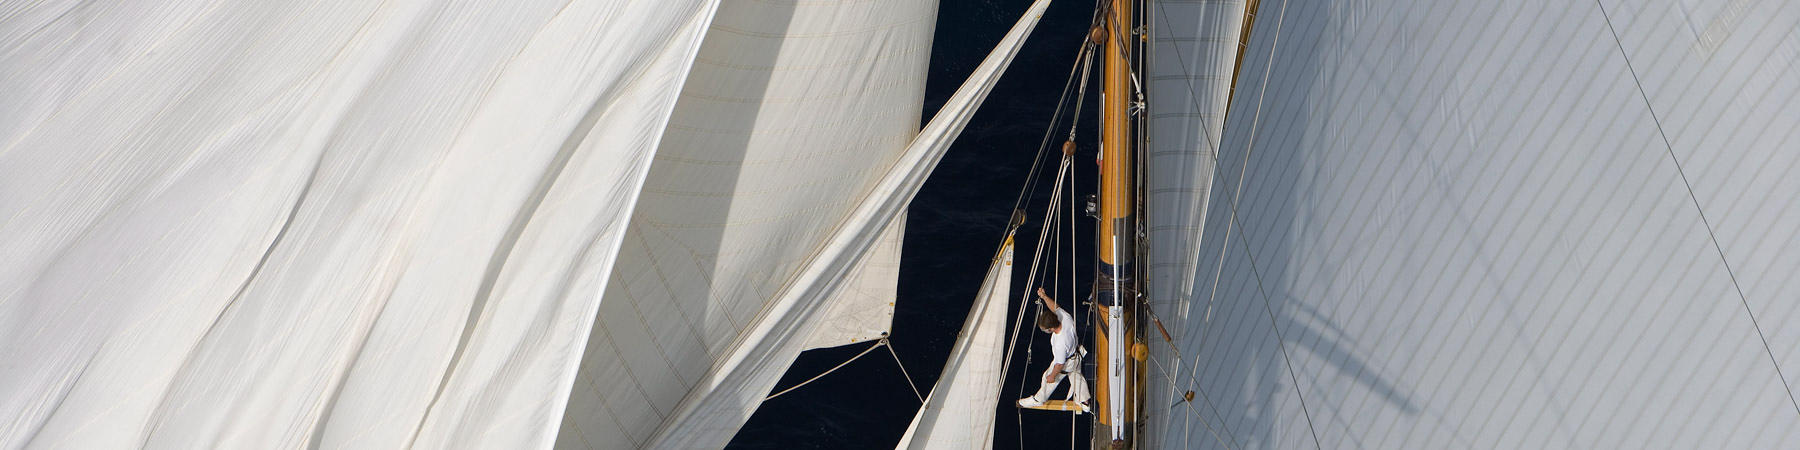 Classic Yachting - Photo Plisson